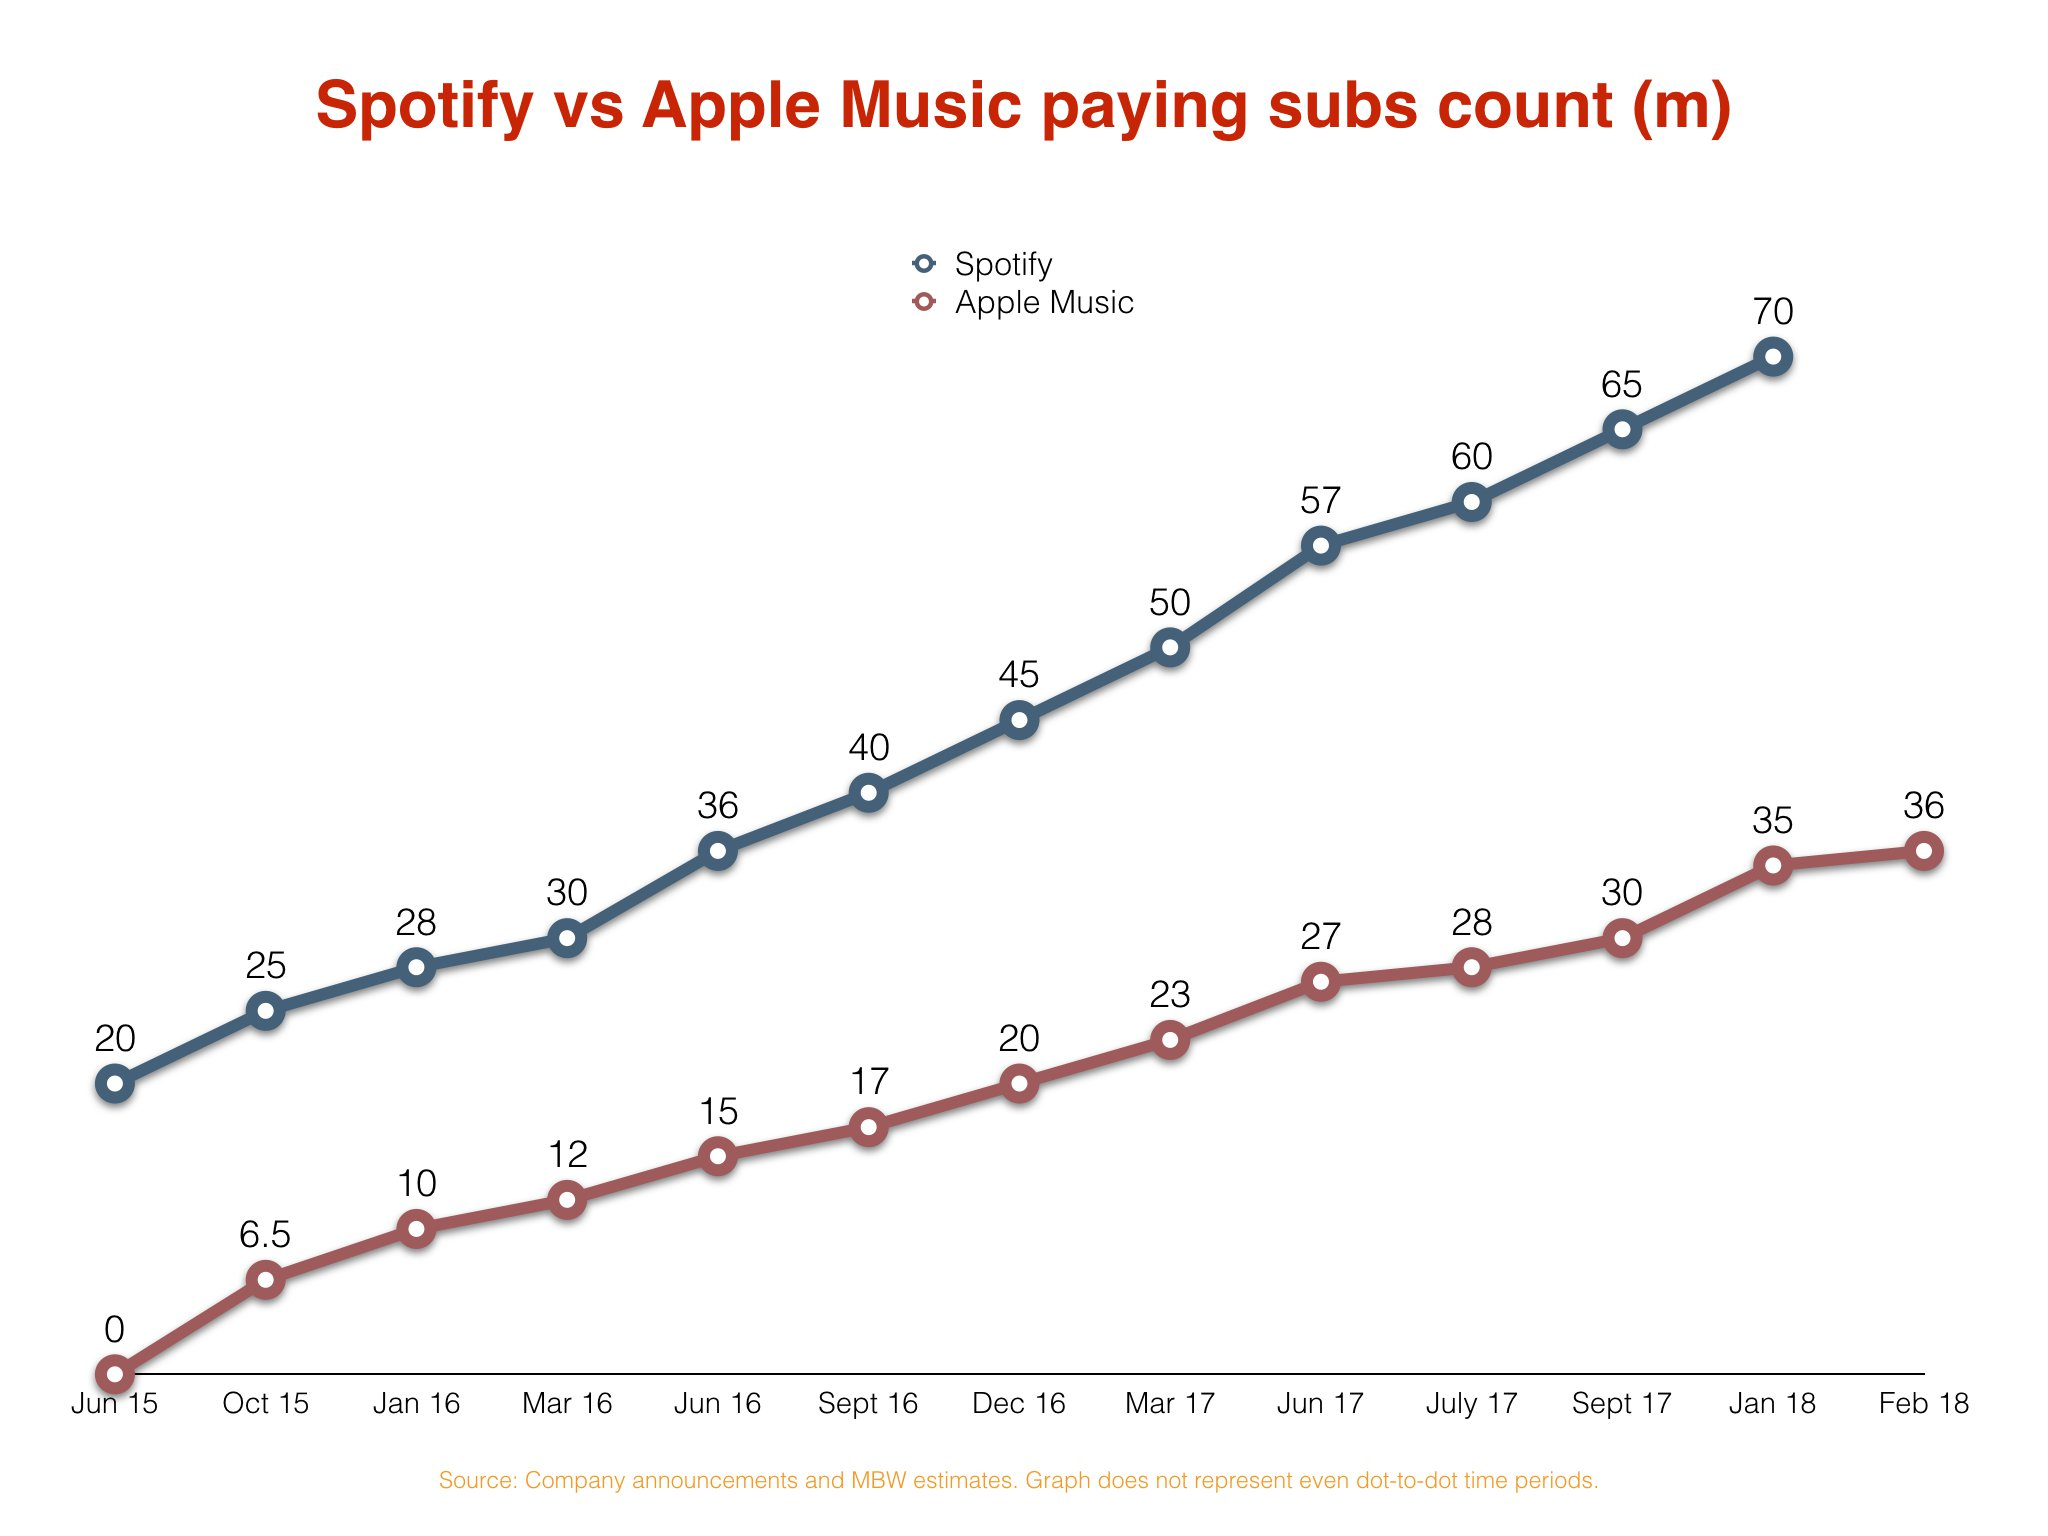 Apple Music set to overtake Spotify in United States subscribers, WSJ says